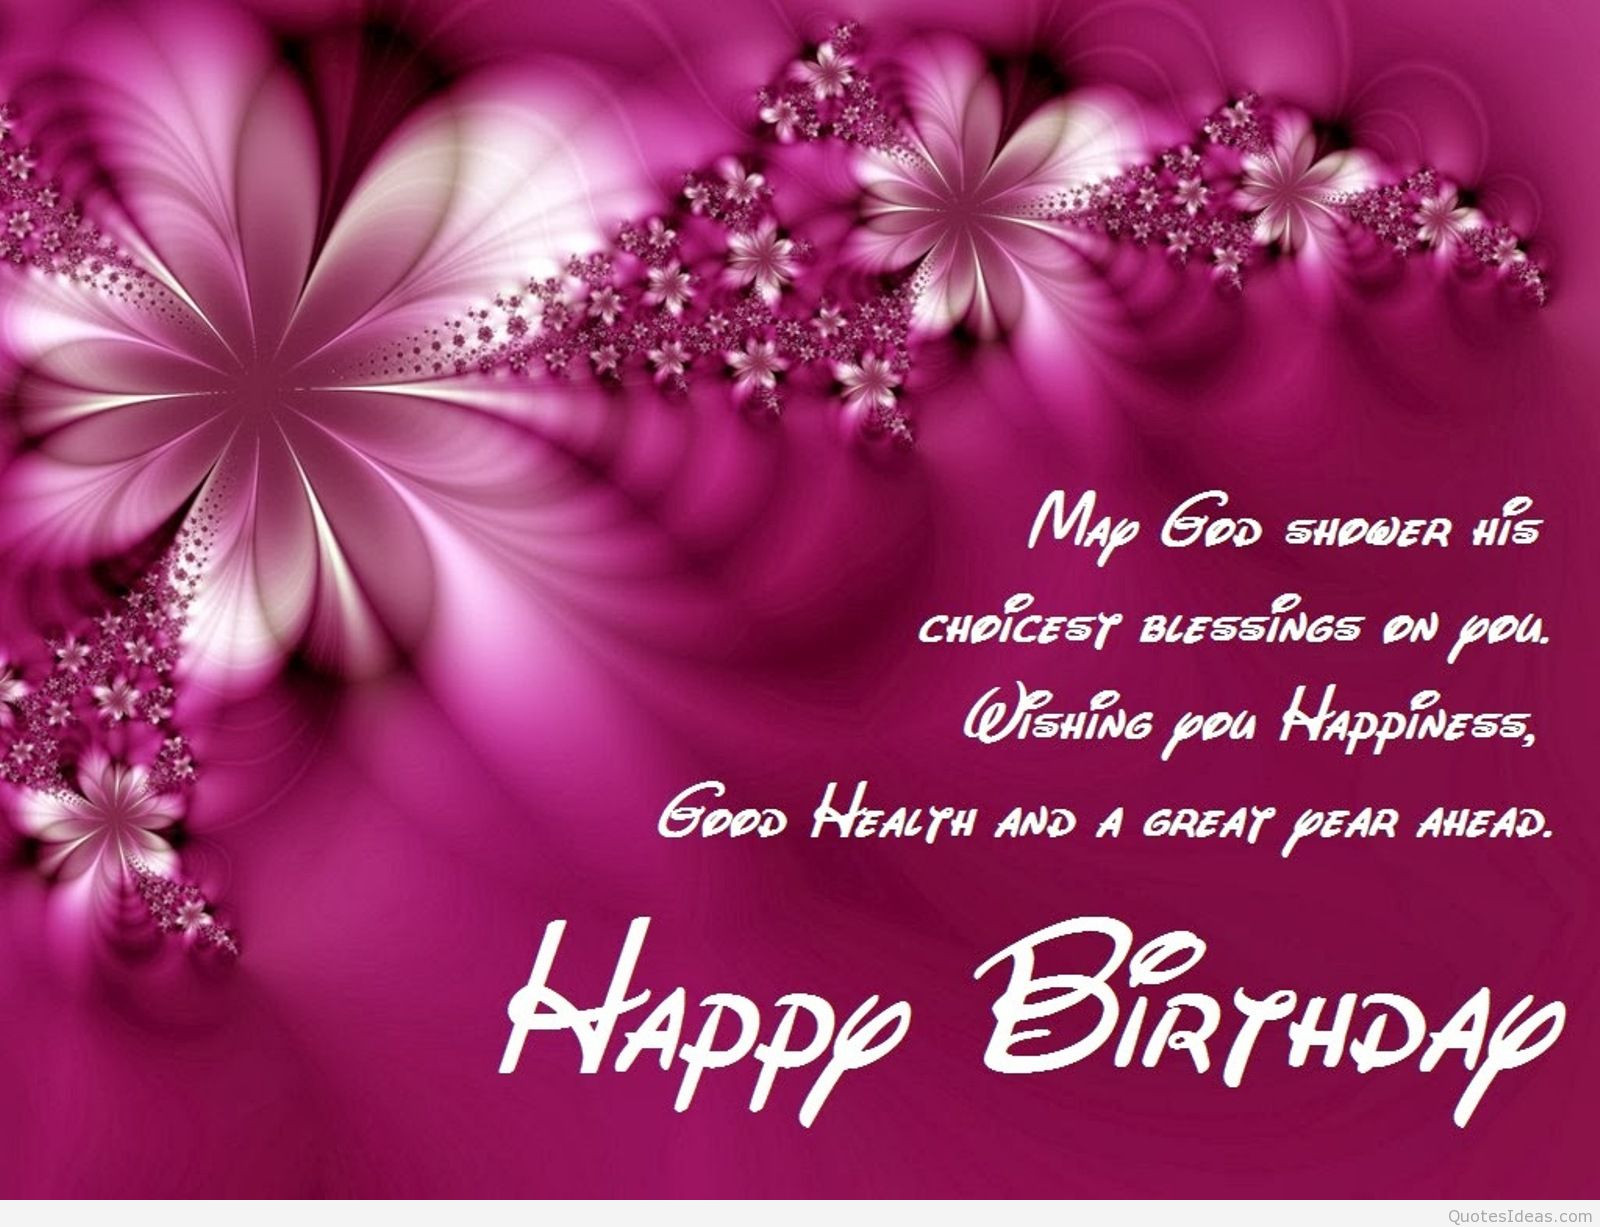 Best ideas about Happy Birthday Sister Quotes . Save or Pin Wonderful happy birthday sister quotes and images Now.